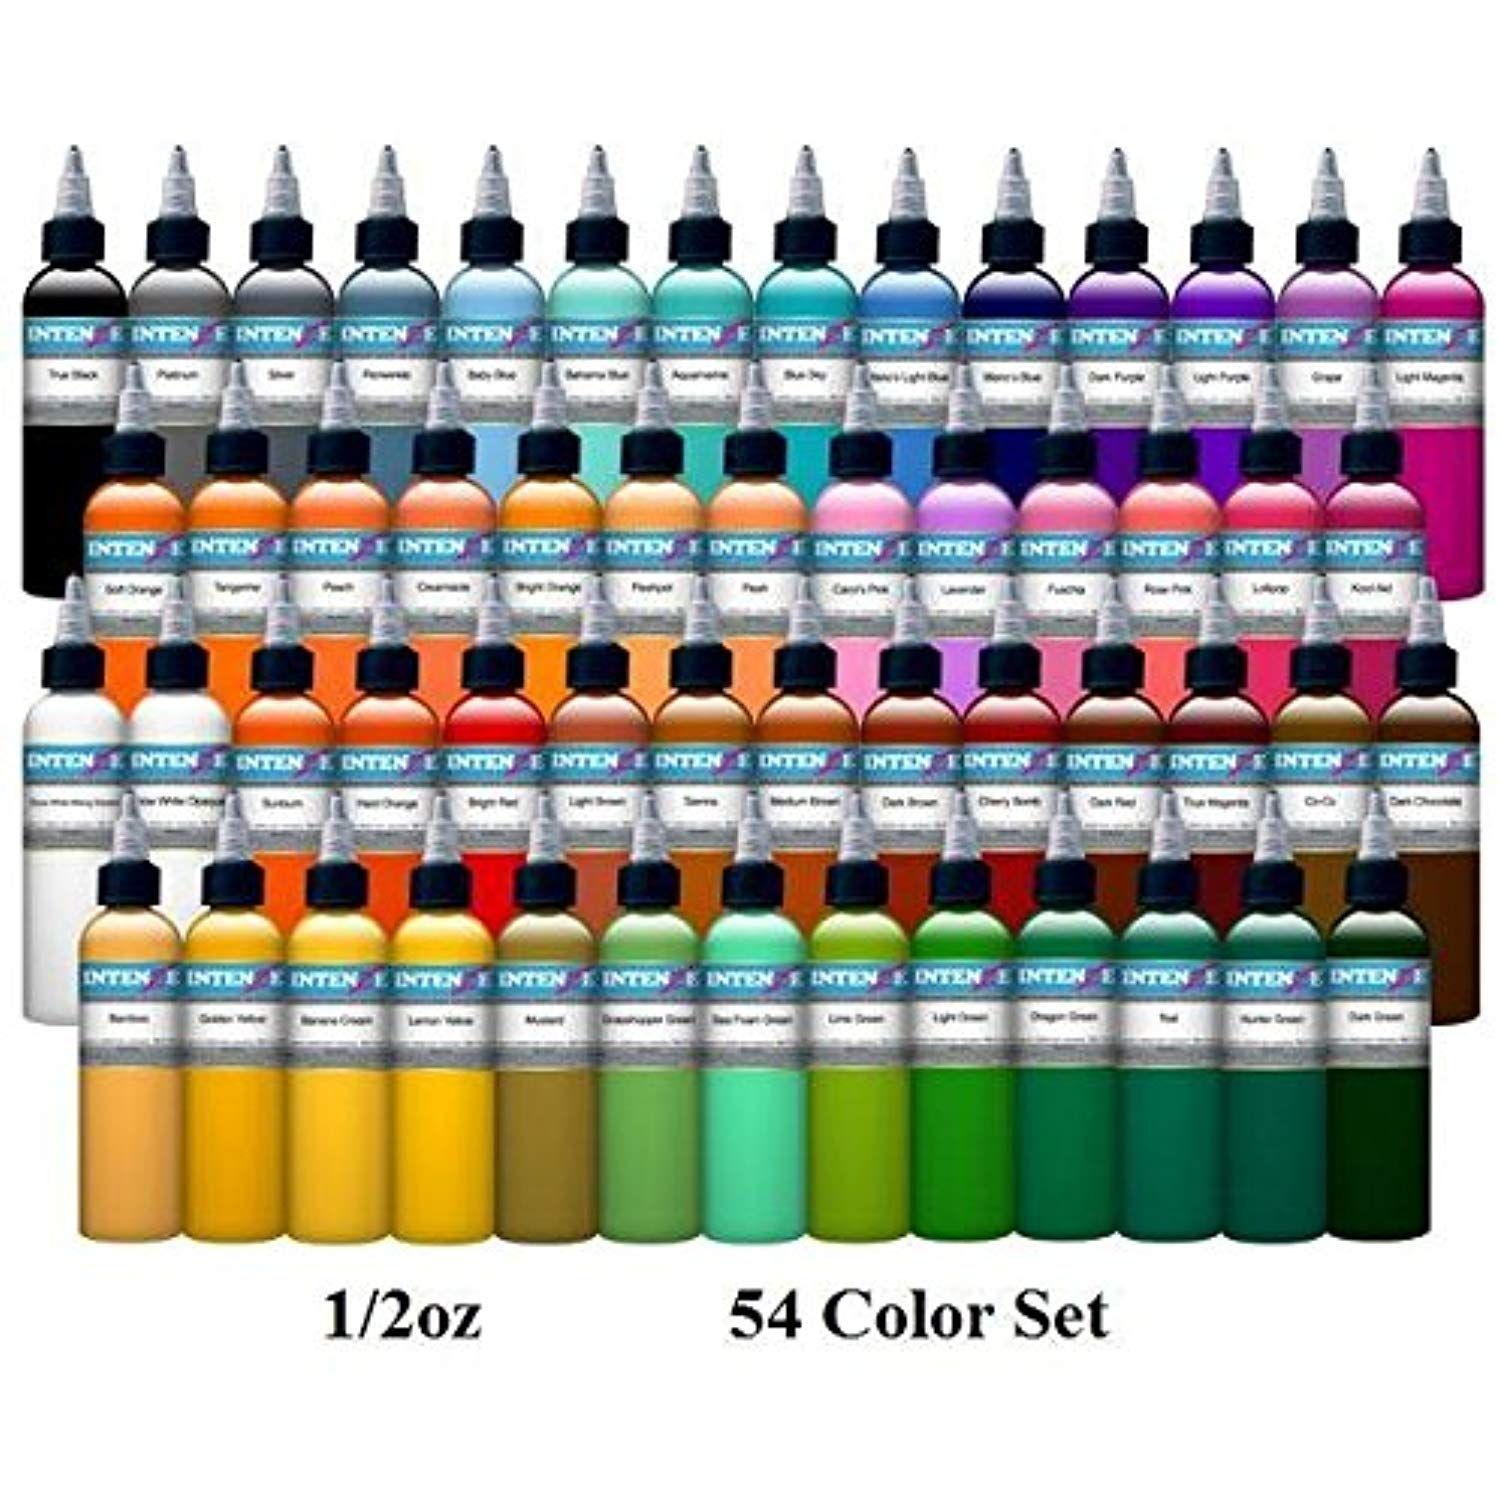 54 Color Set Intenze Tattoo Ink 1 2oz Bottles Want Additional Info Click On The Image This Is An Affiliate Li Tattoo Ink Sets Ink Tattoo Color Tattoo